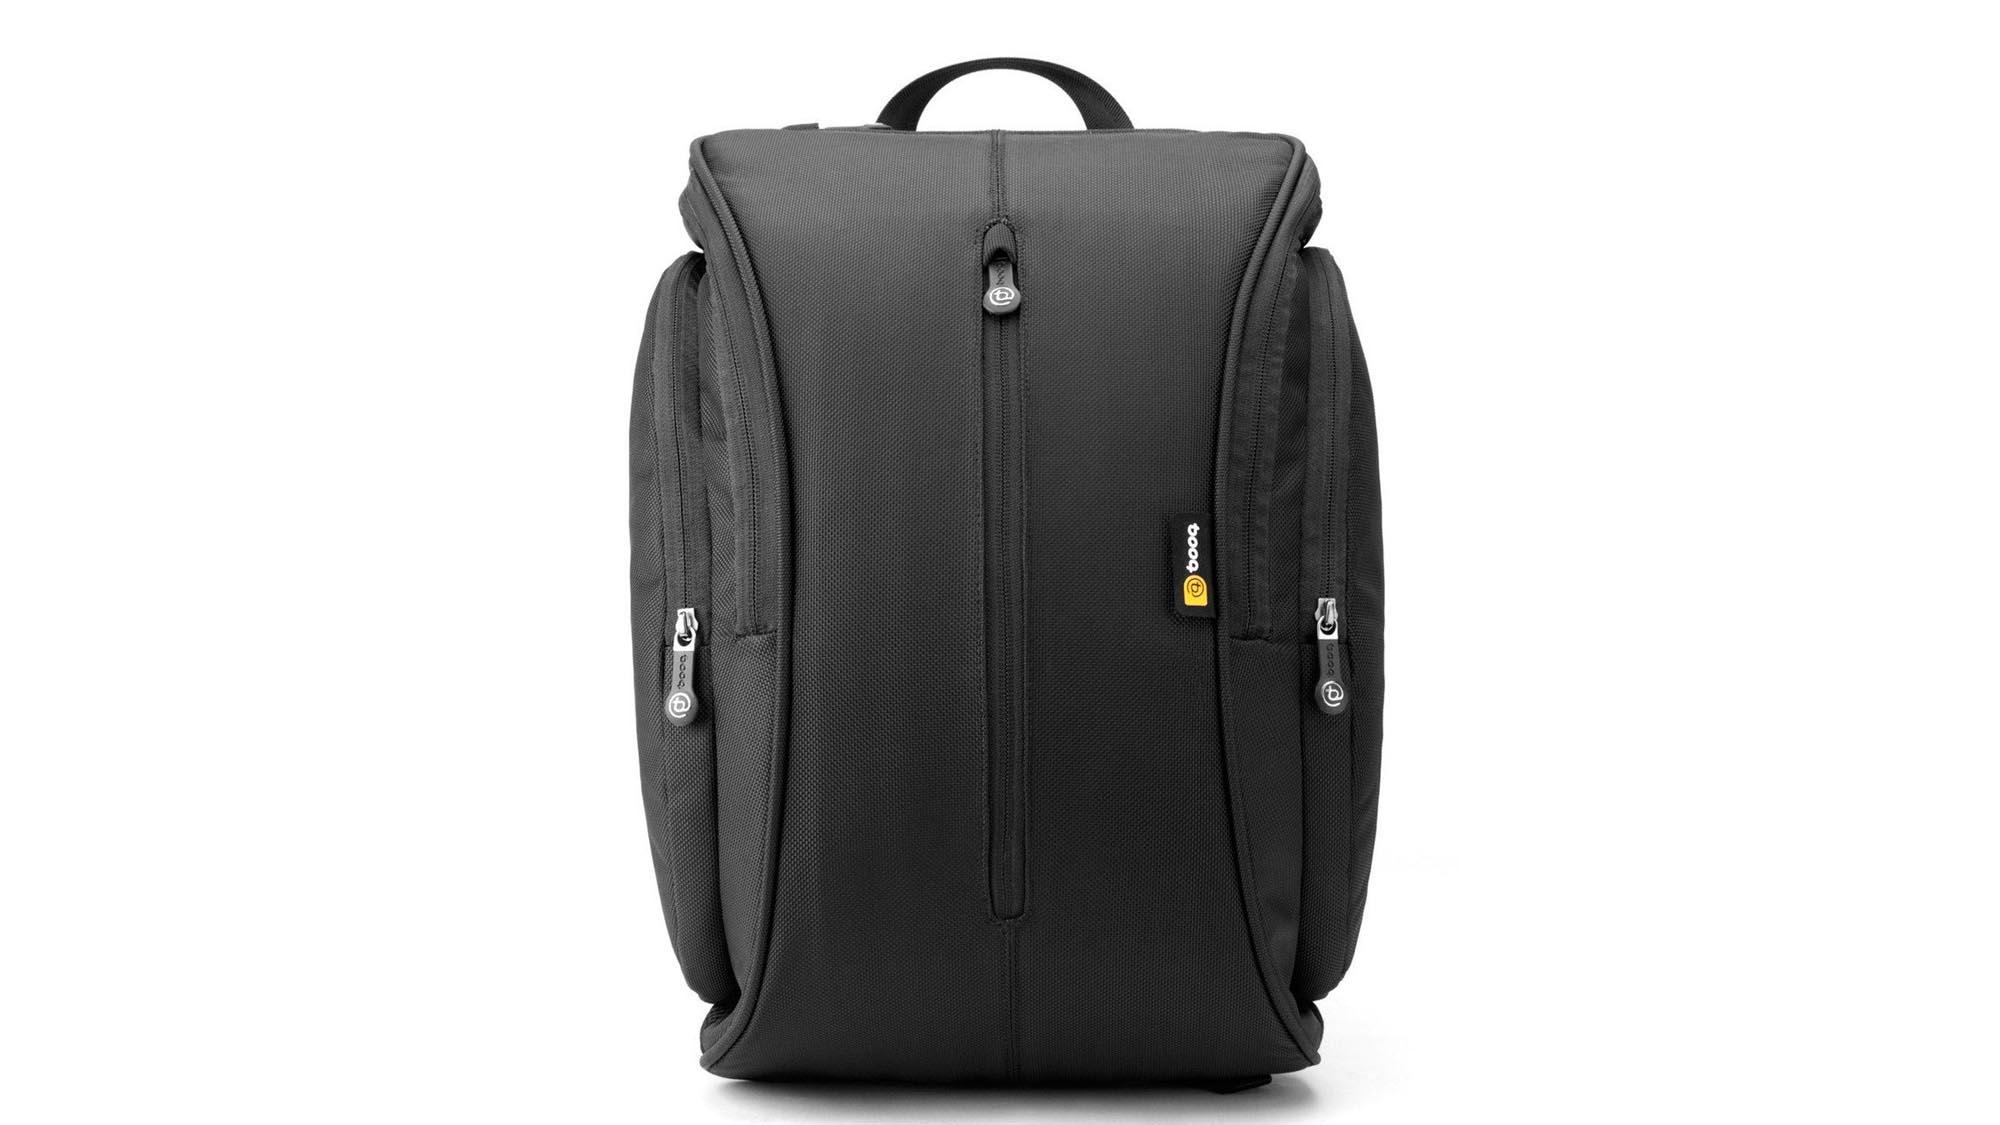 Best laptop bags 2017: The best laptop bags, sleeves, backpacks ...